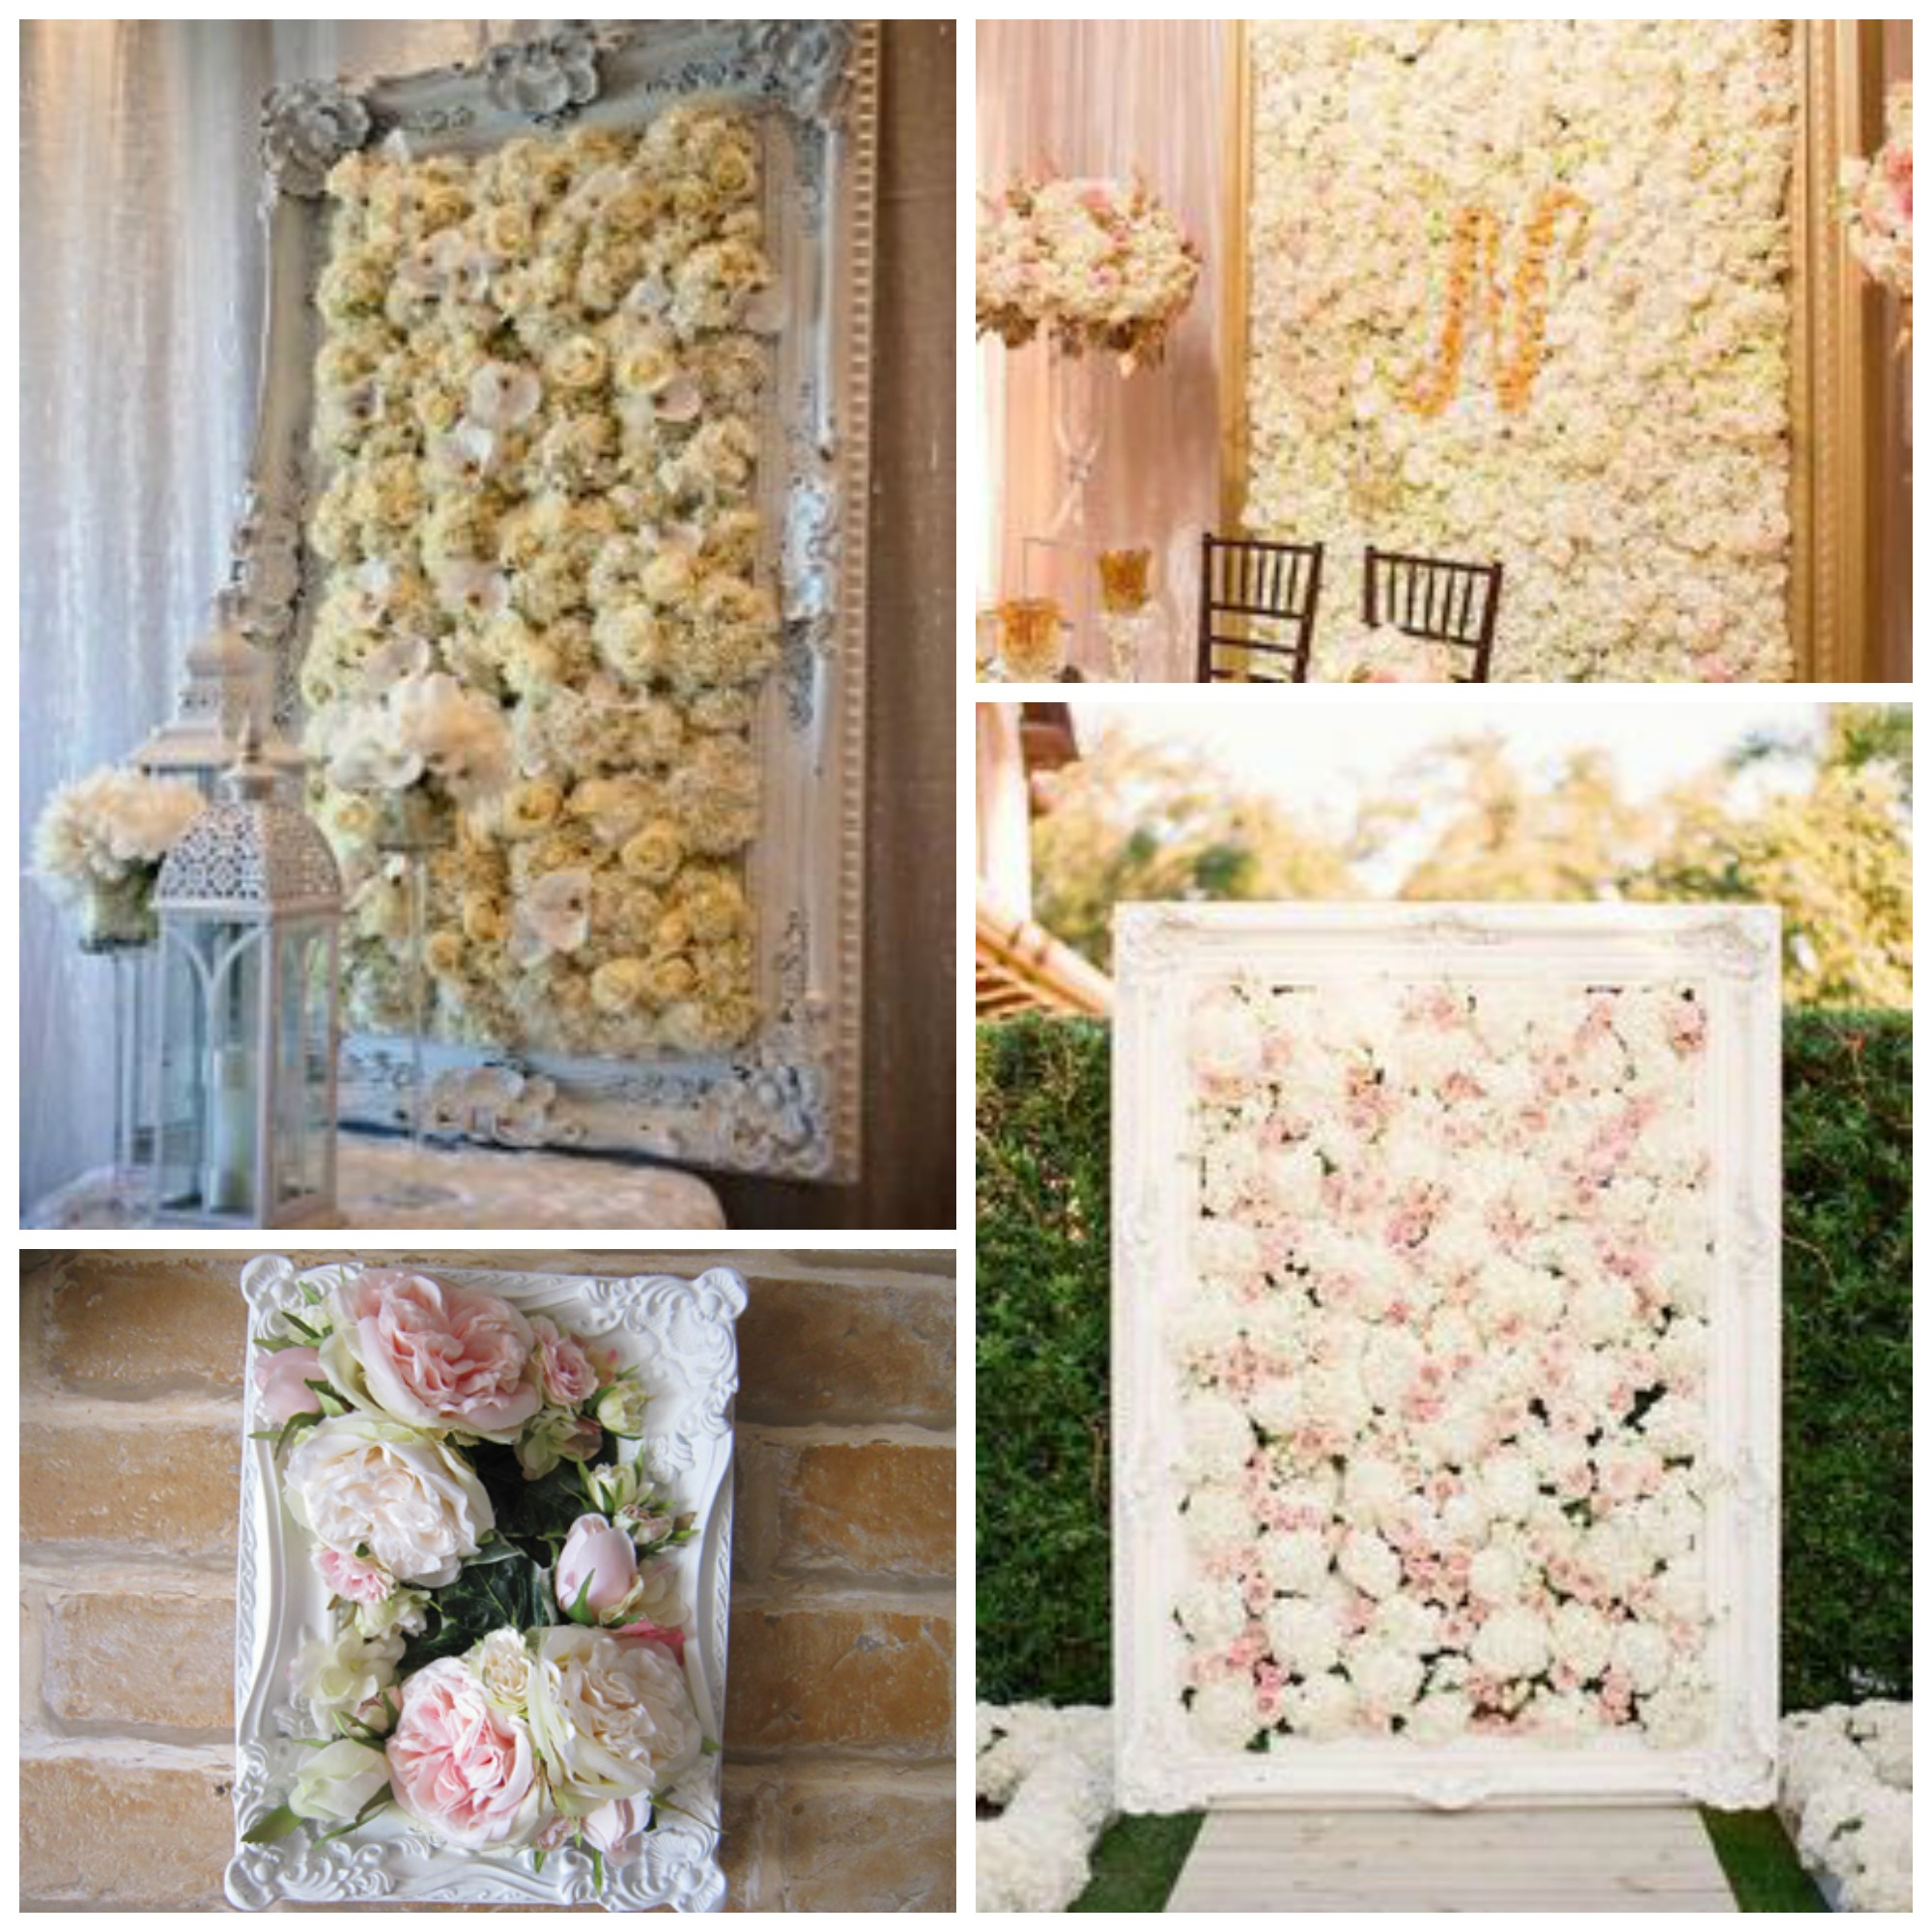 What We Love About Flower Walls In Frames Is How Elegant They Look Adding An Instant Luxe To A Wedding Event Or Even Office Home Decor Without The